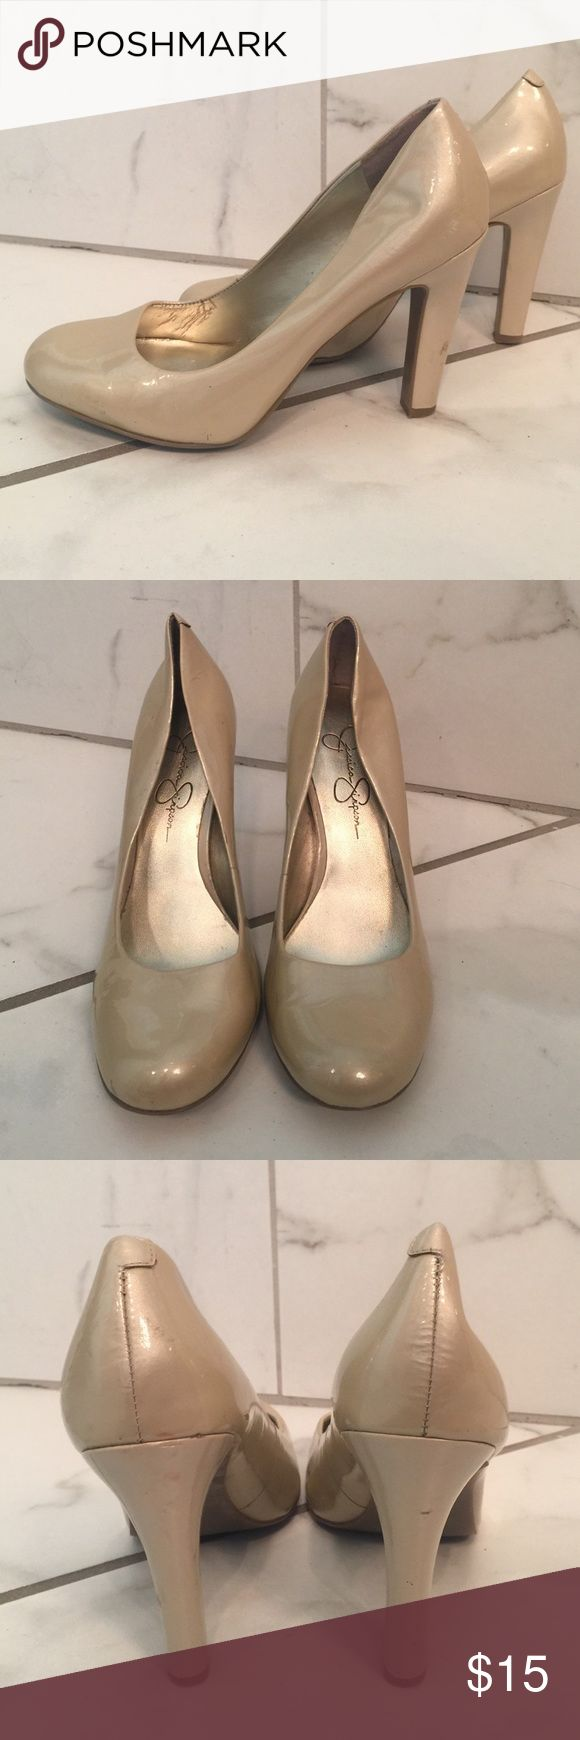 Jessica Simpson creme pumps Beautiful pearl color -- the perfect height to be stylish & comfortable Jessica Simpson Shoes Heels